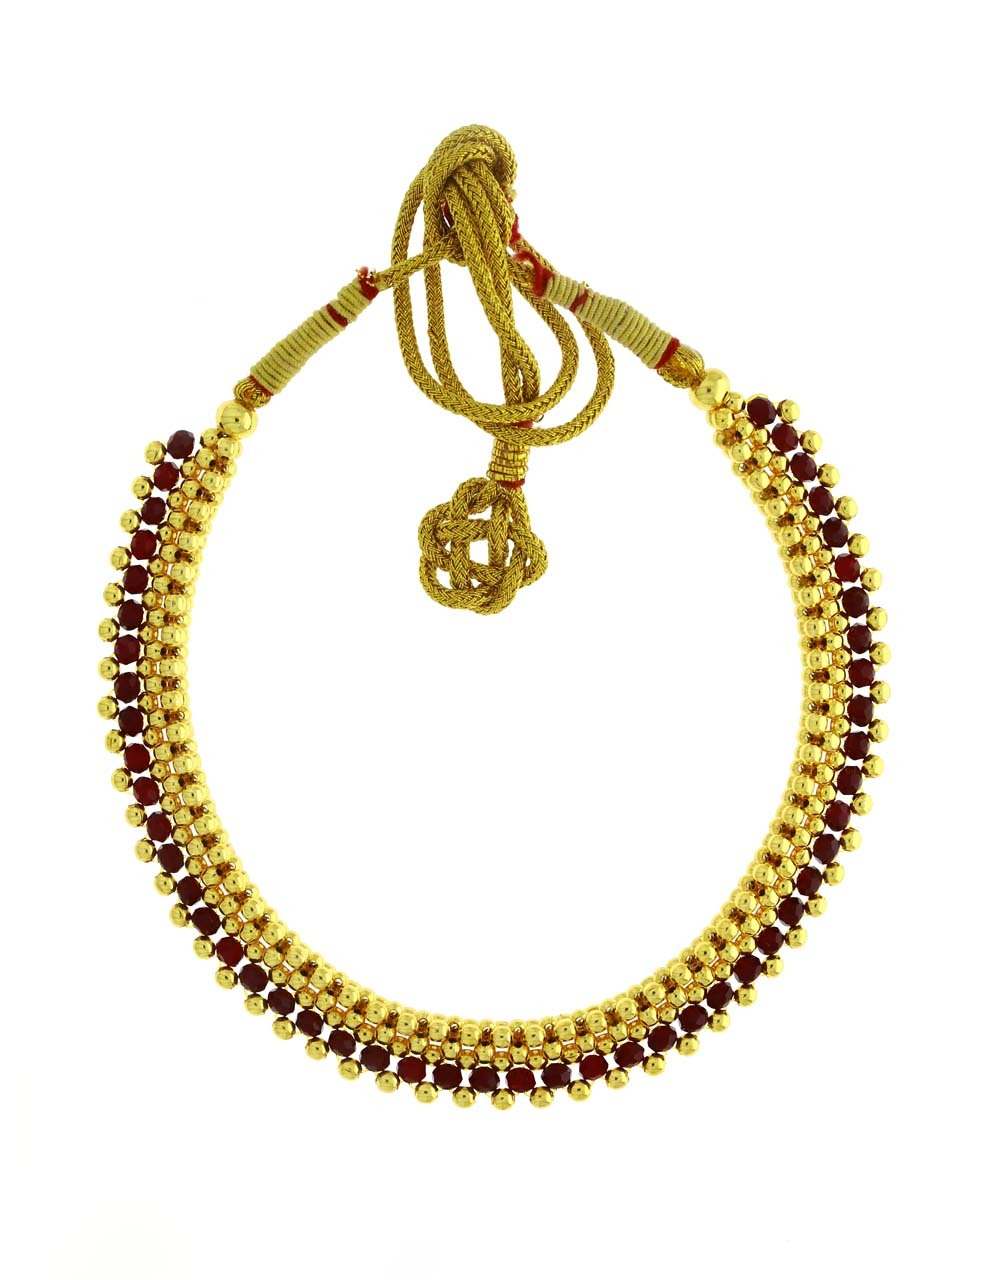 Maroon Beads Styled Adorable Thushi Necklace for Women